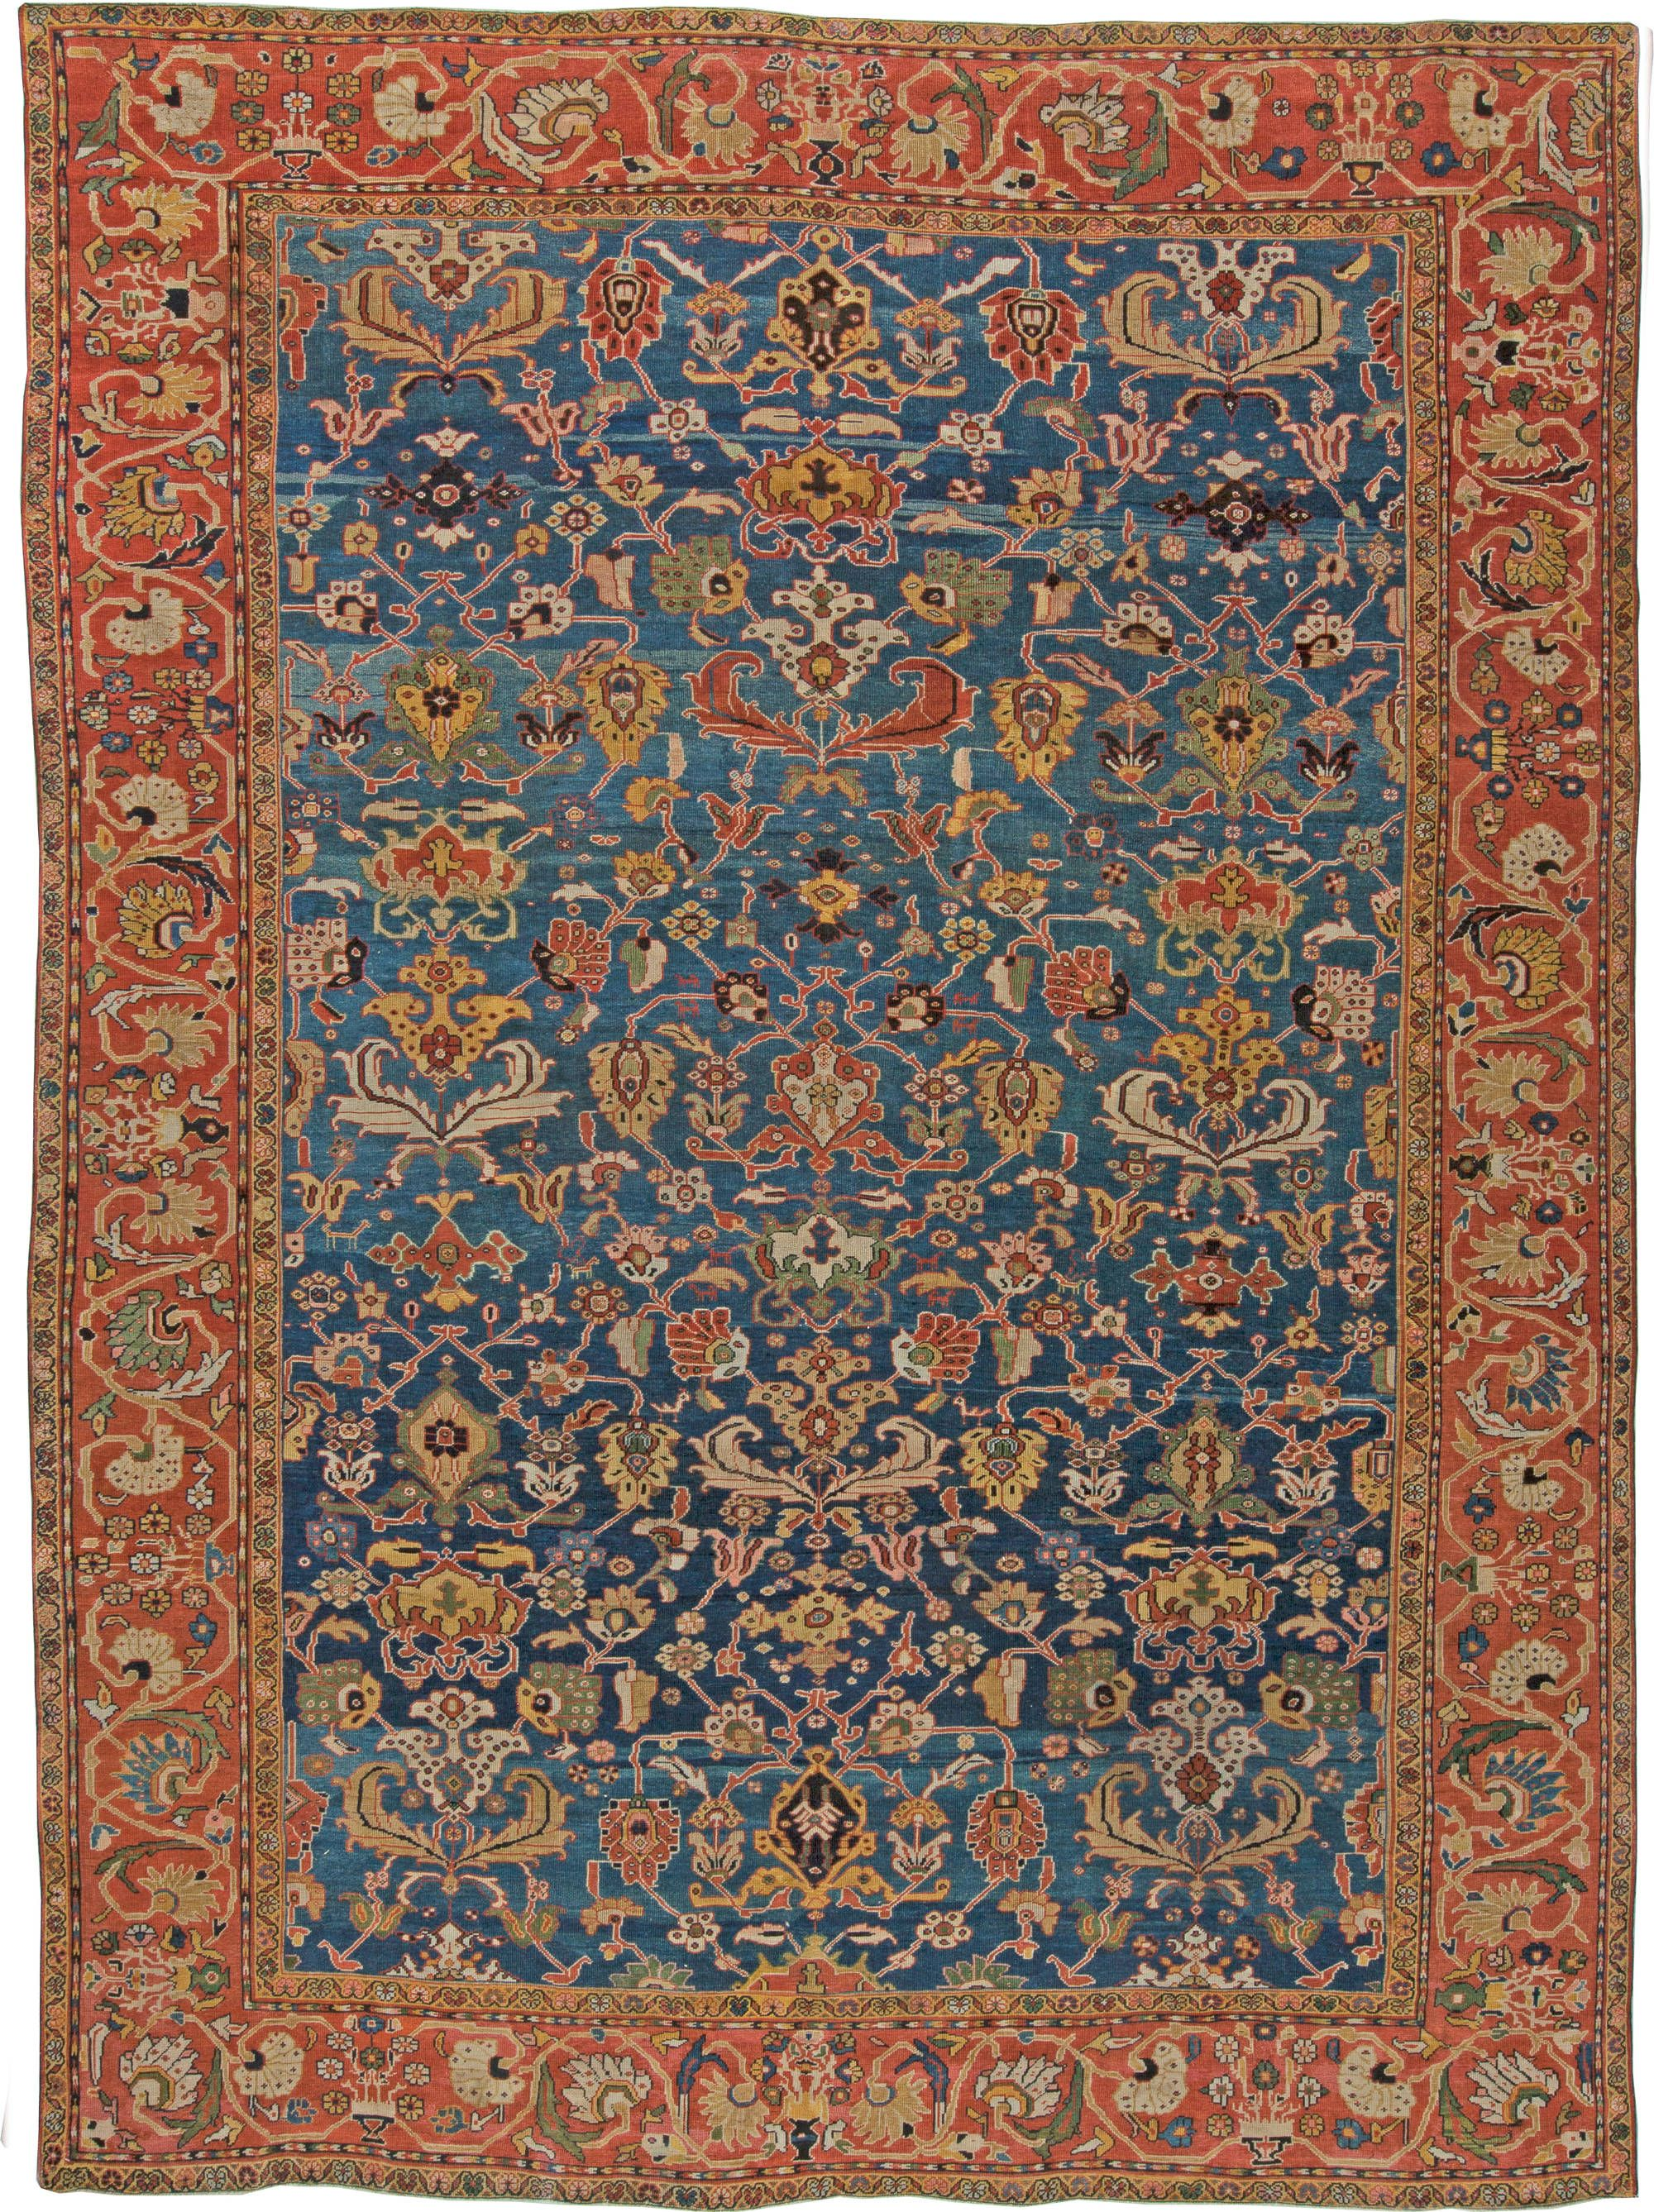 Antique Rug Antique Carpets Antique Persian Rugs Tabriz Rugs